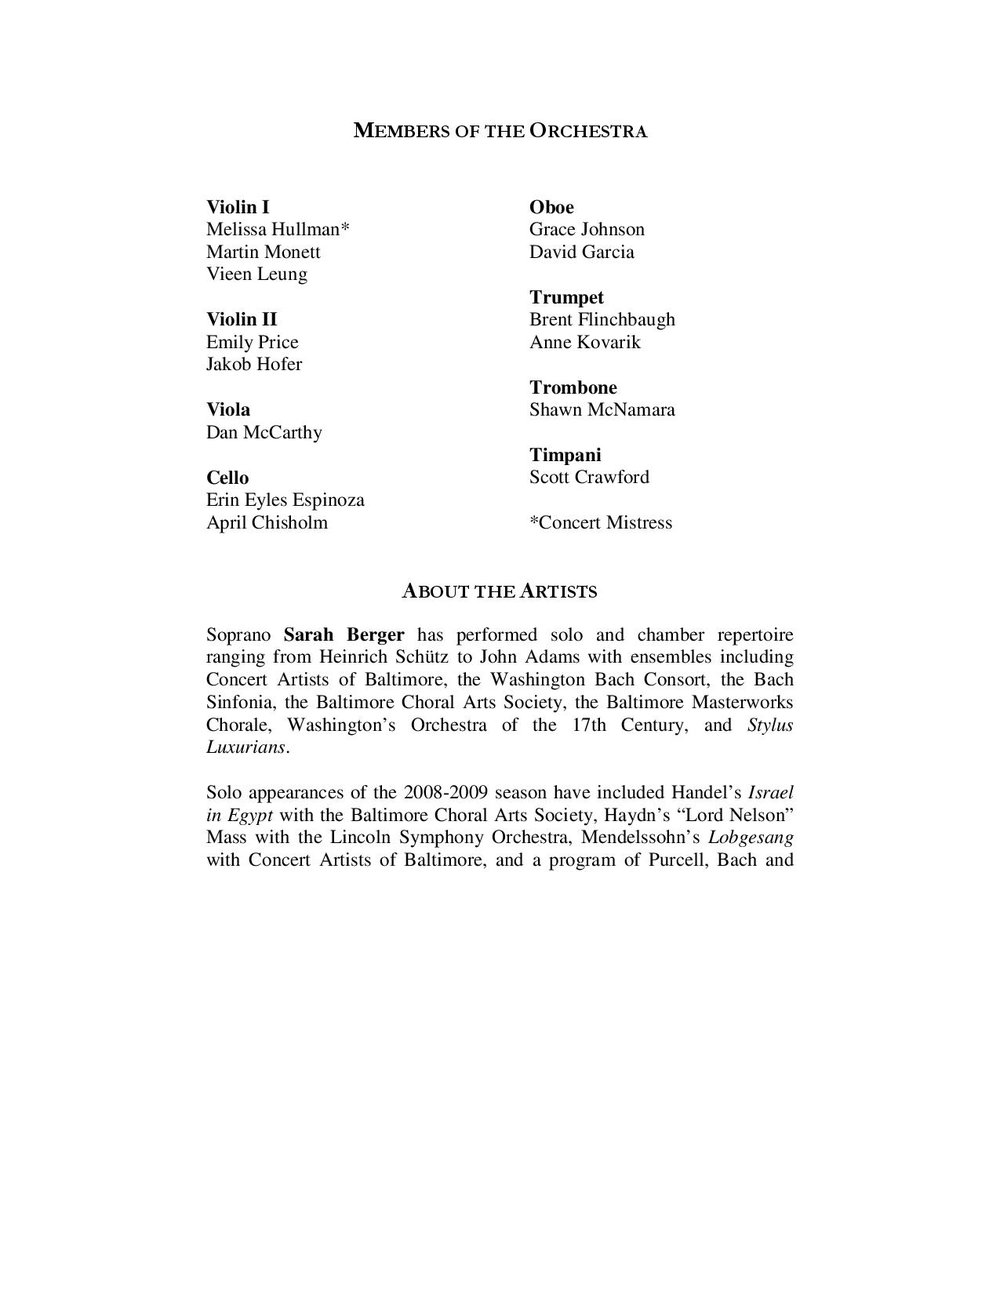 2009-04-26 - Program for Printing-page-005.jpg